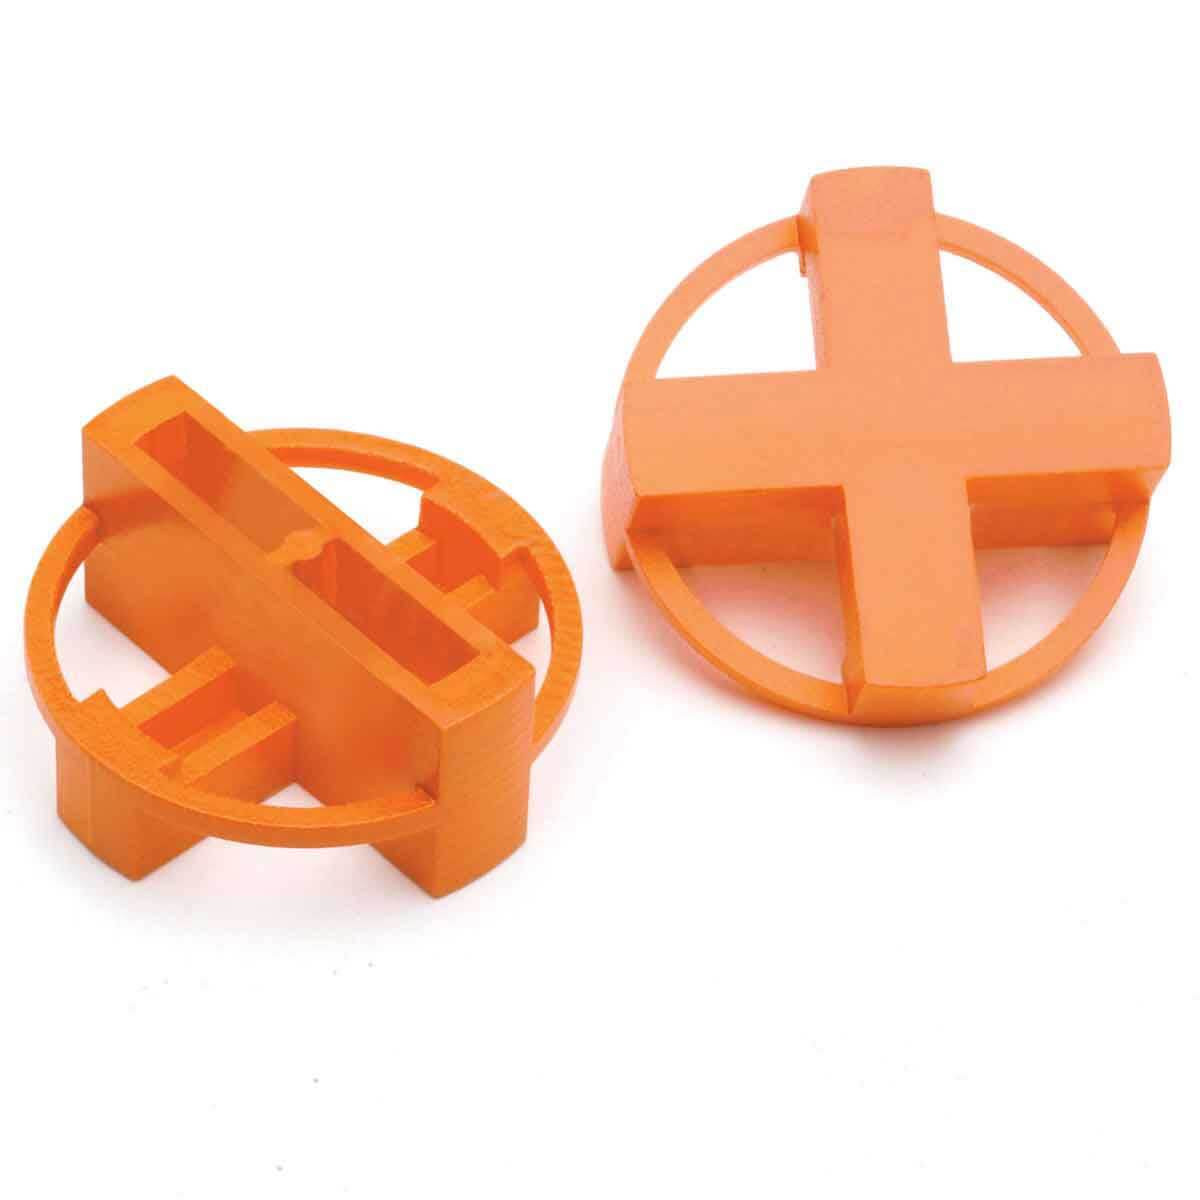 Tavy Tile Spacers 1/4th inch Orange